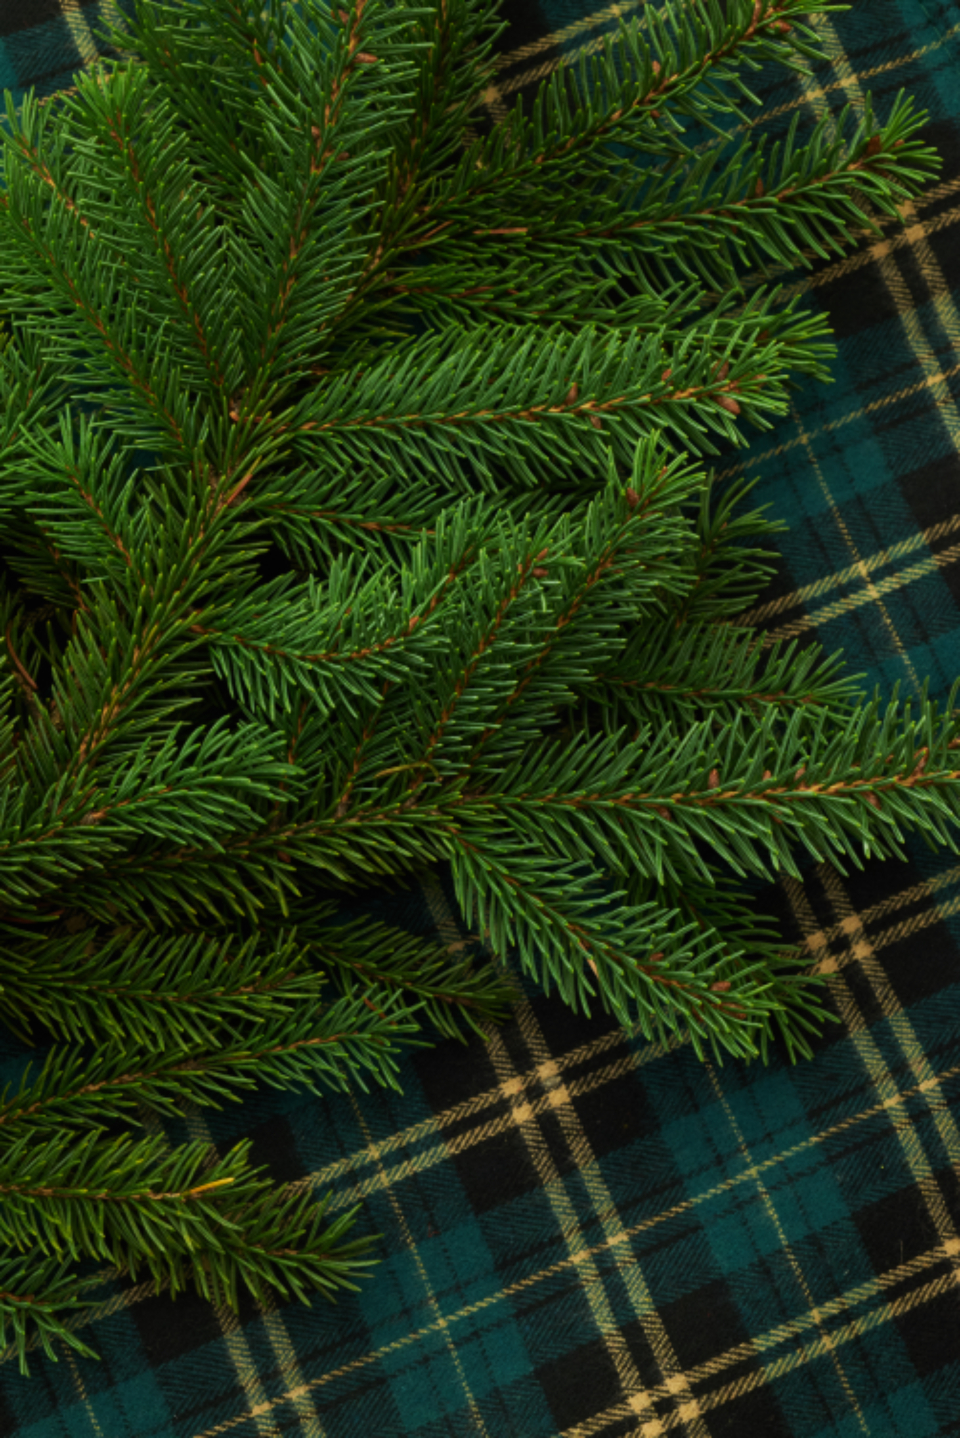 seasonal backgrounds christmas flat lay pine tree branches festive copyspace holiday merry xmas background plaid